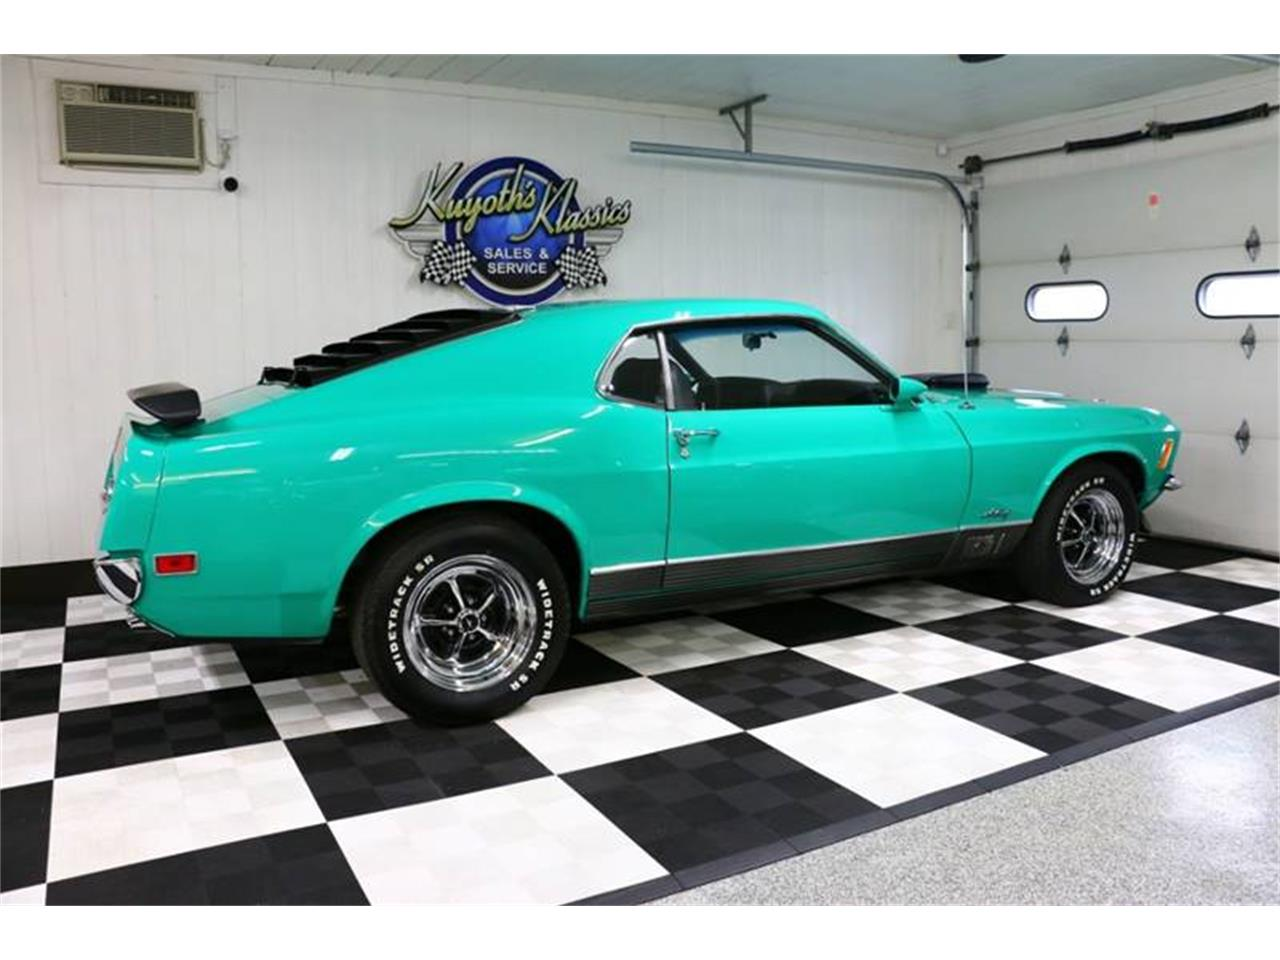 Large Picture of Classic '70 Ford Mustang located in Stratford Wisconsin - $49,995.00 Offered by Kuyoth's Klassics - Q6NU